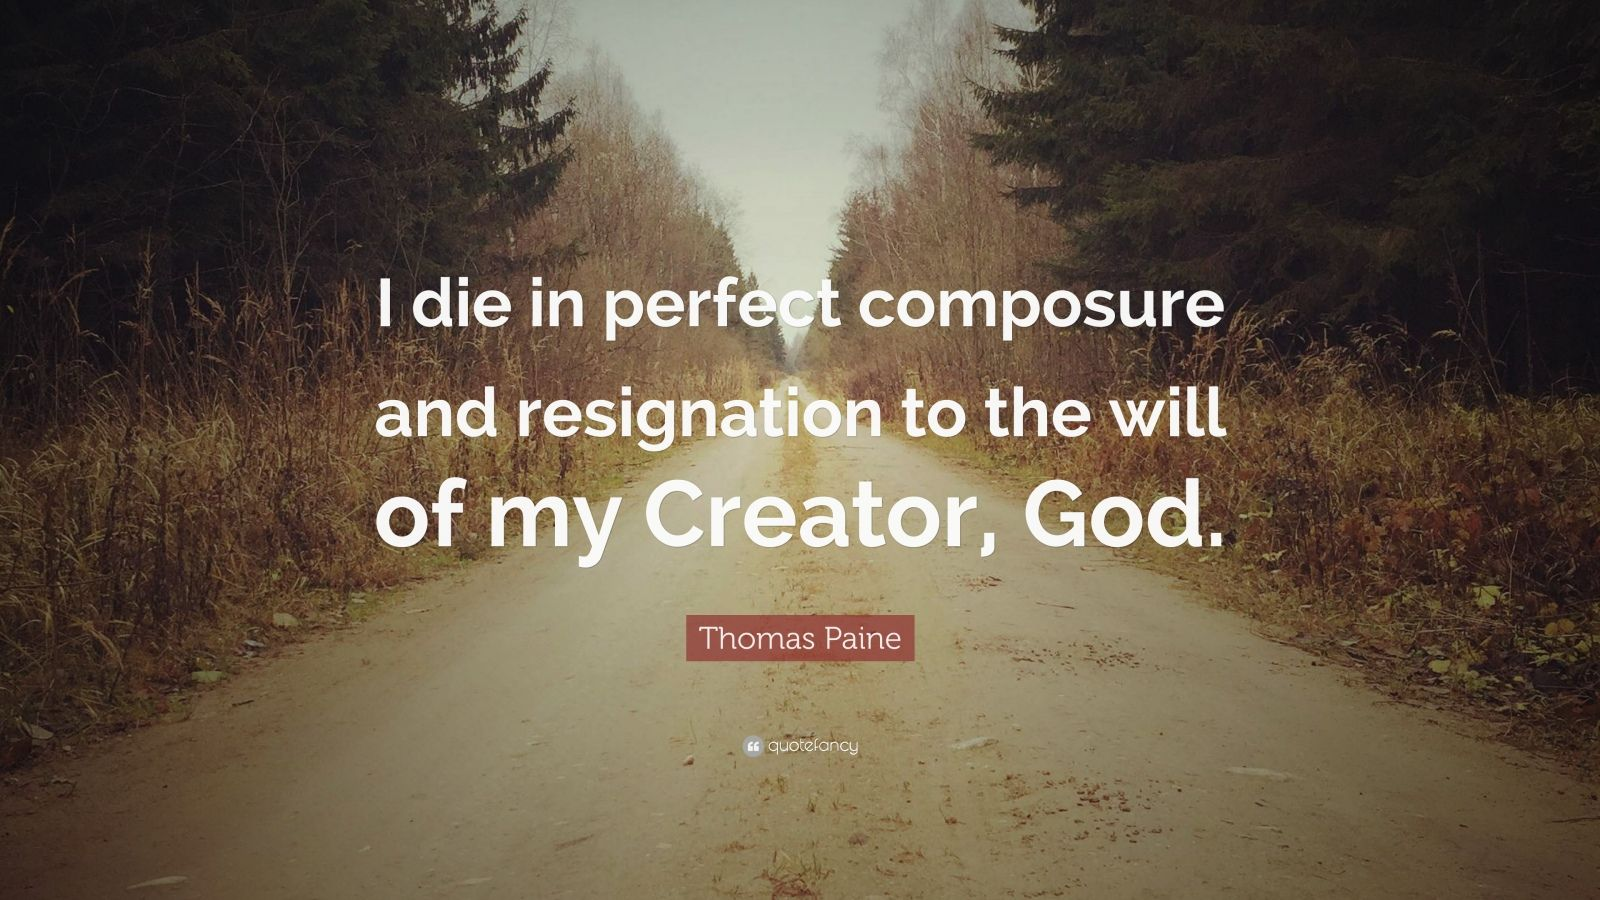 """Thomas Paine Quote: """"I die in perfect composure and resignation to the will of my Creator, God."""""""